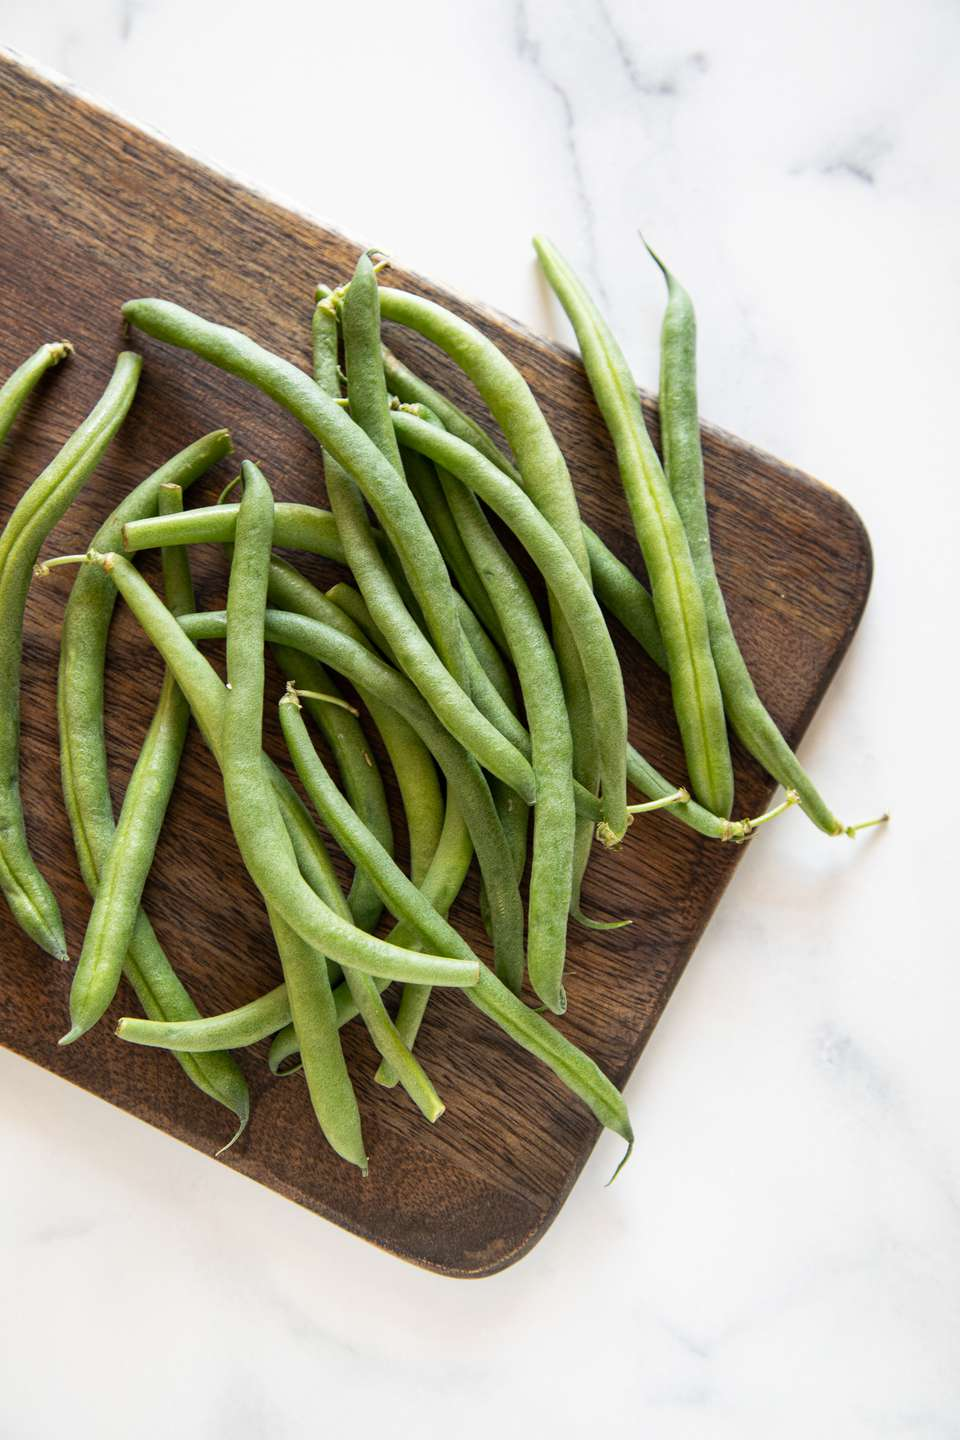 Green beans on a wood cutting board